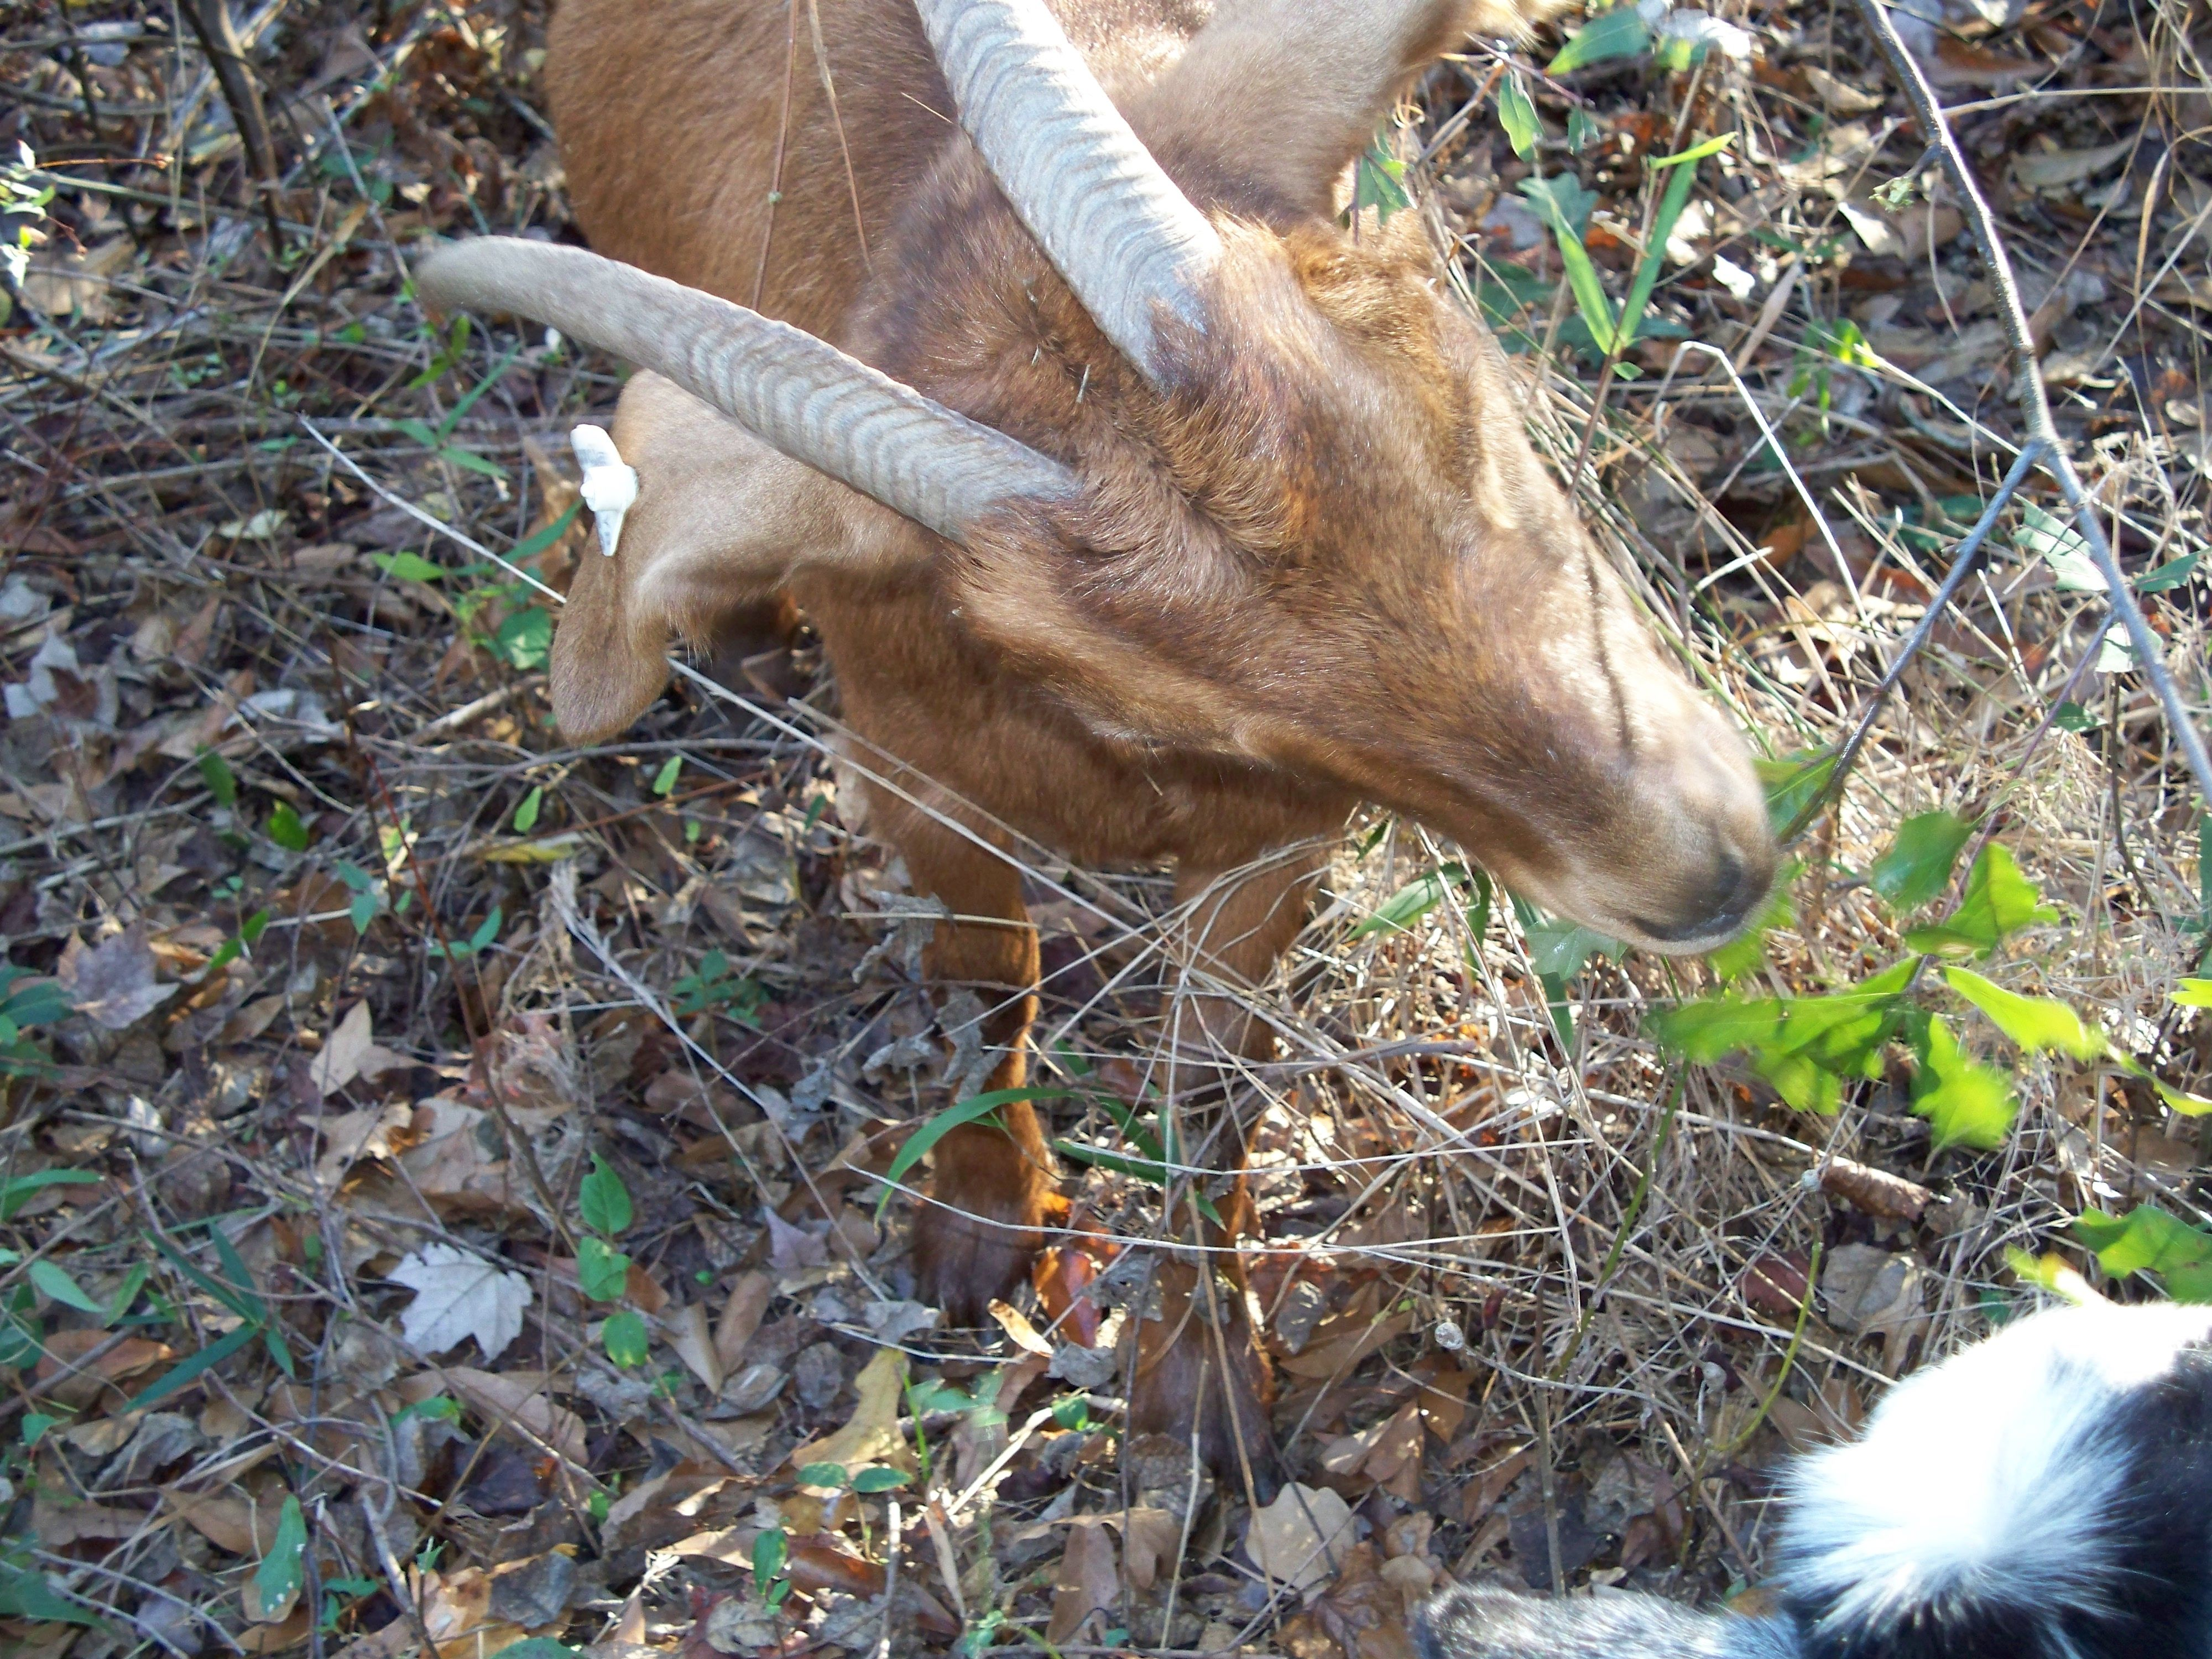 This pretty goat had pretty horns too...The white toggenburg stripes are just lighter chocolate color.